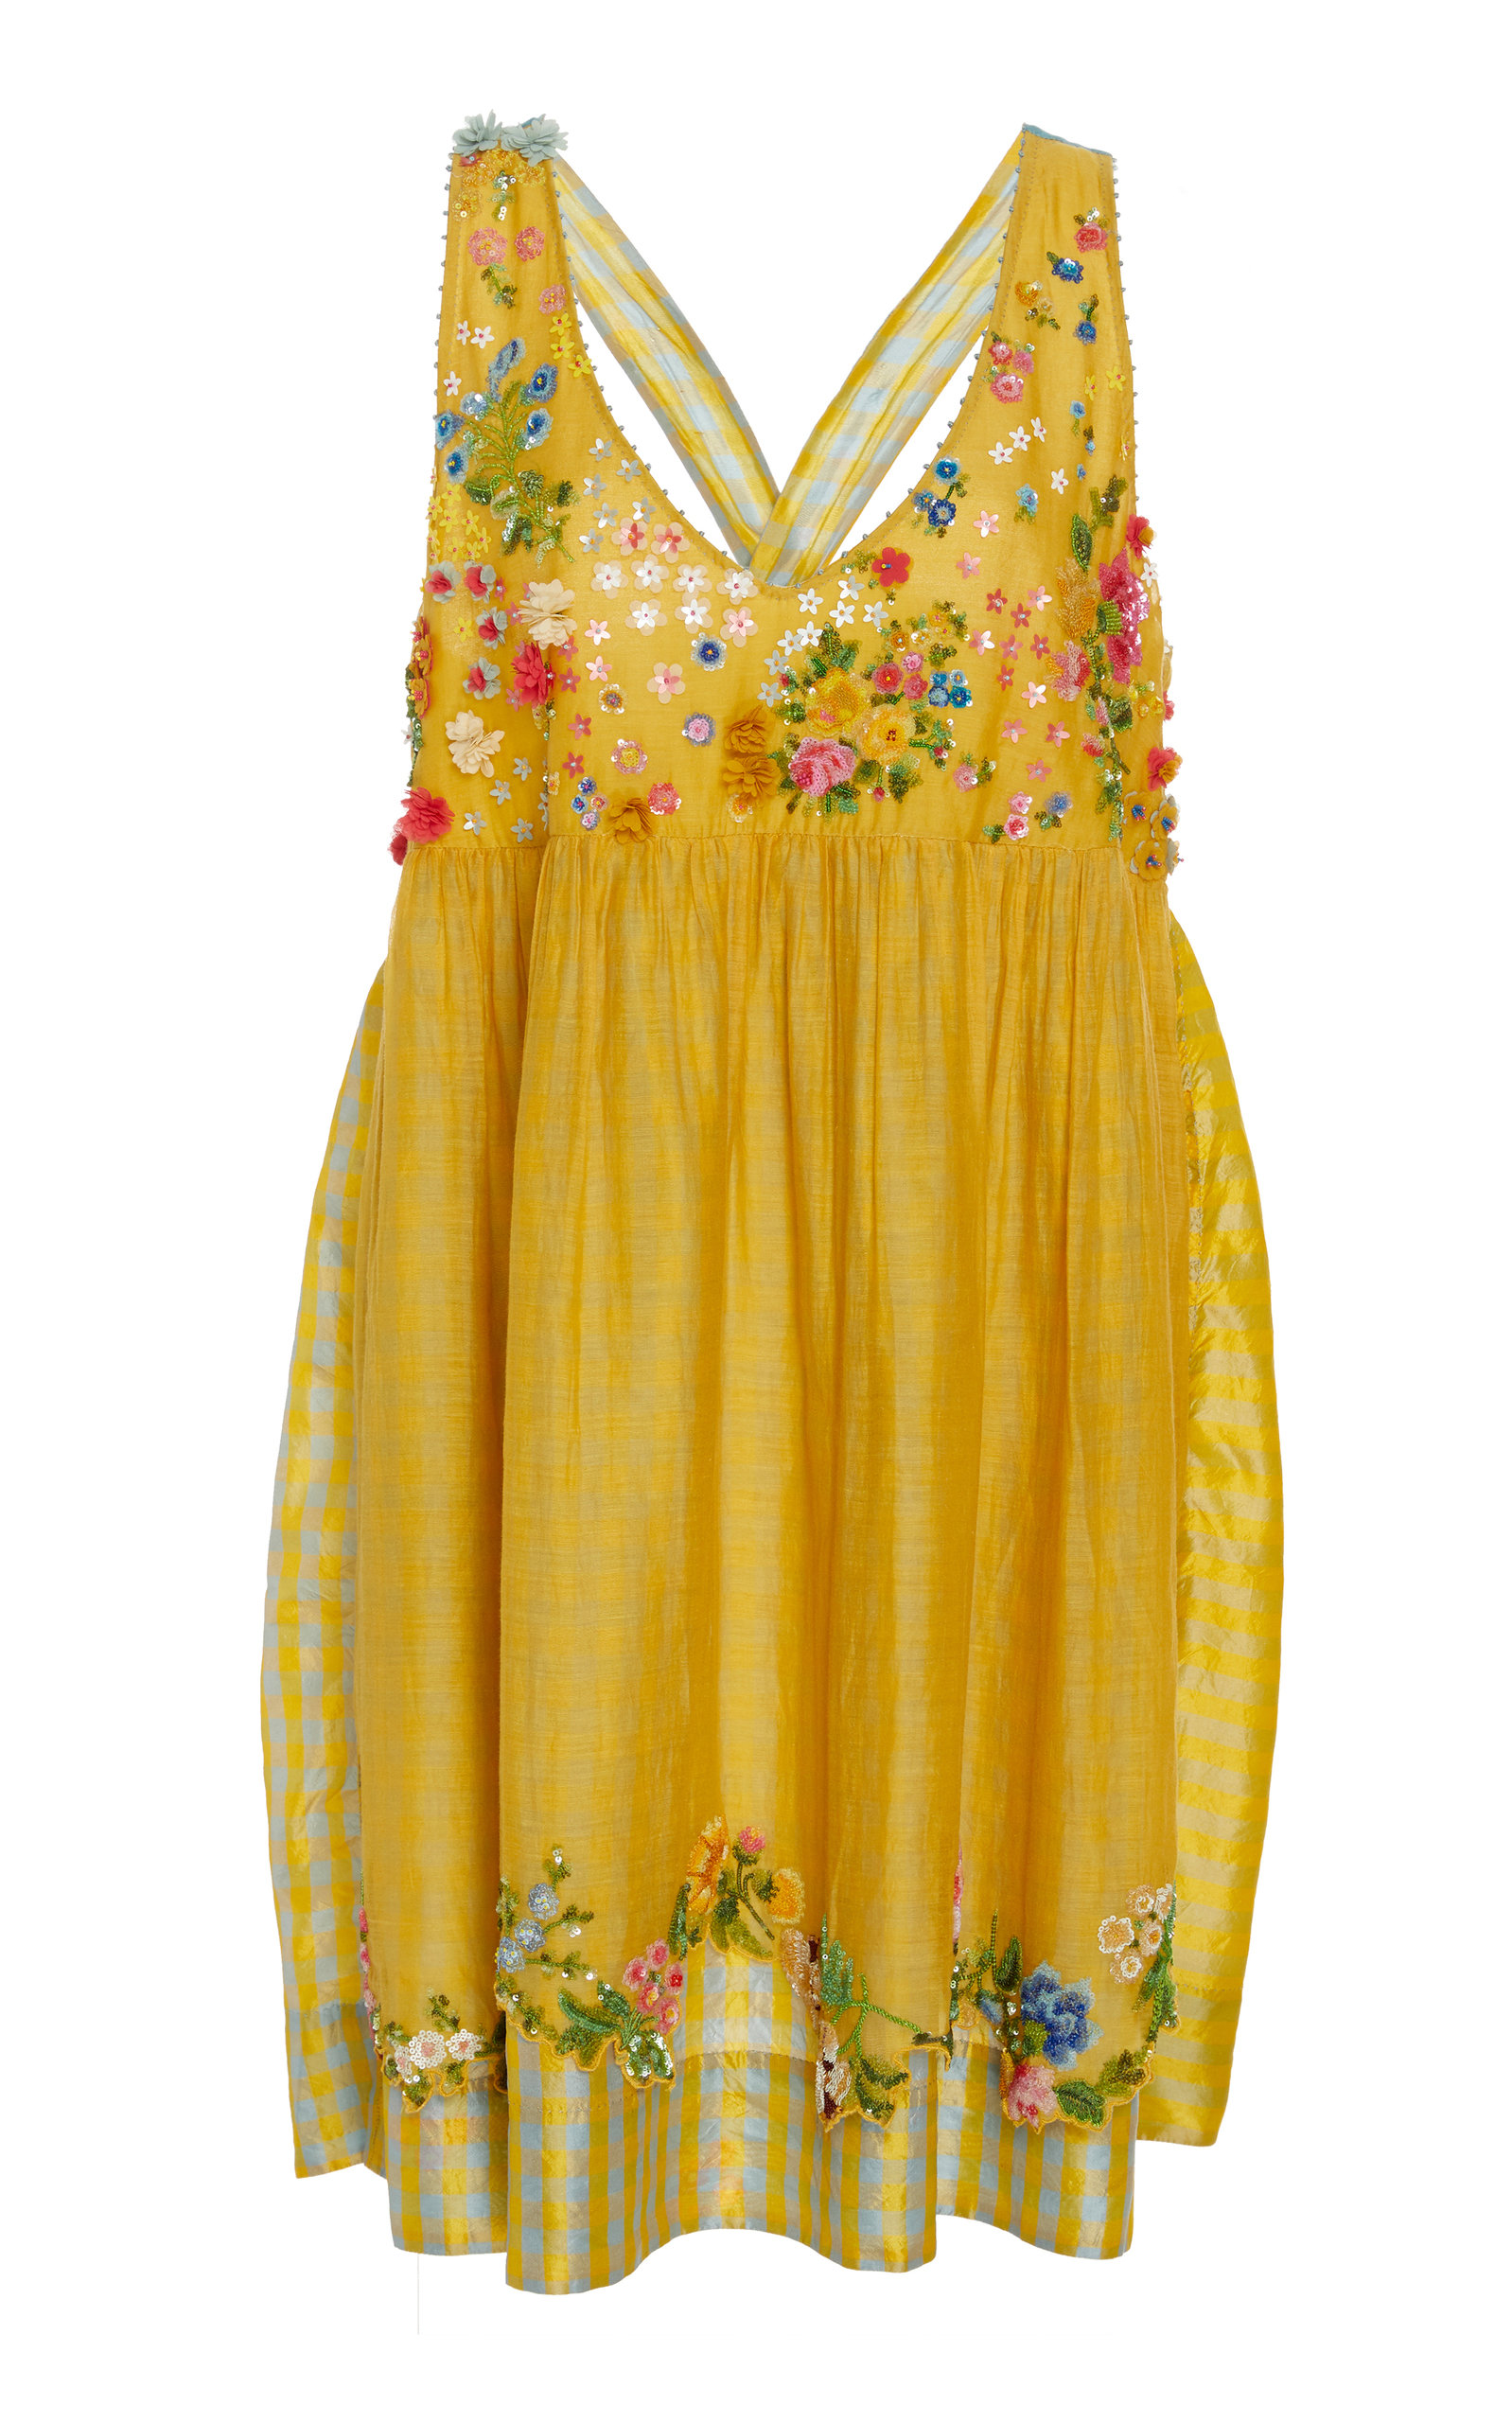 PÉRO Beaded Cotton Dress in Yellow